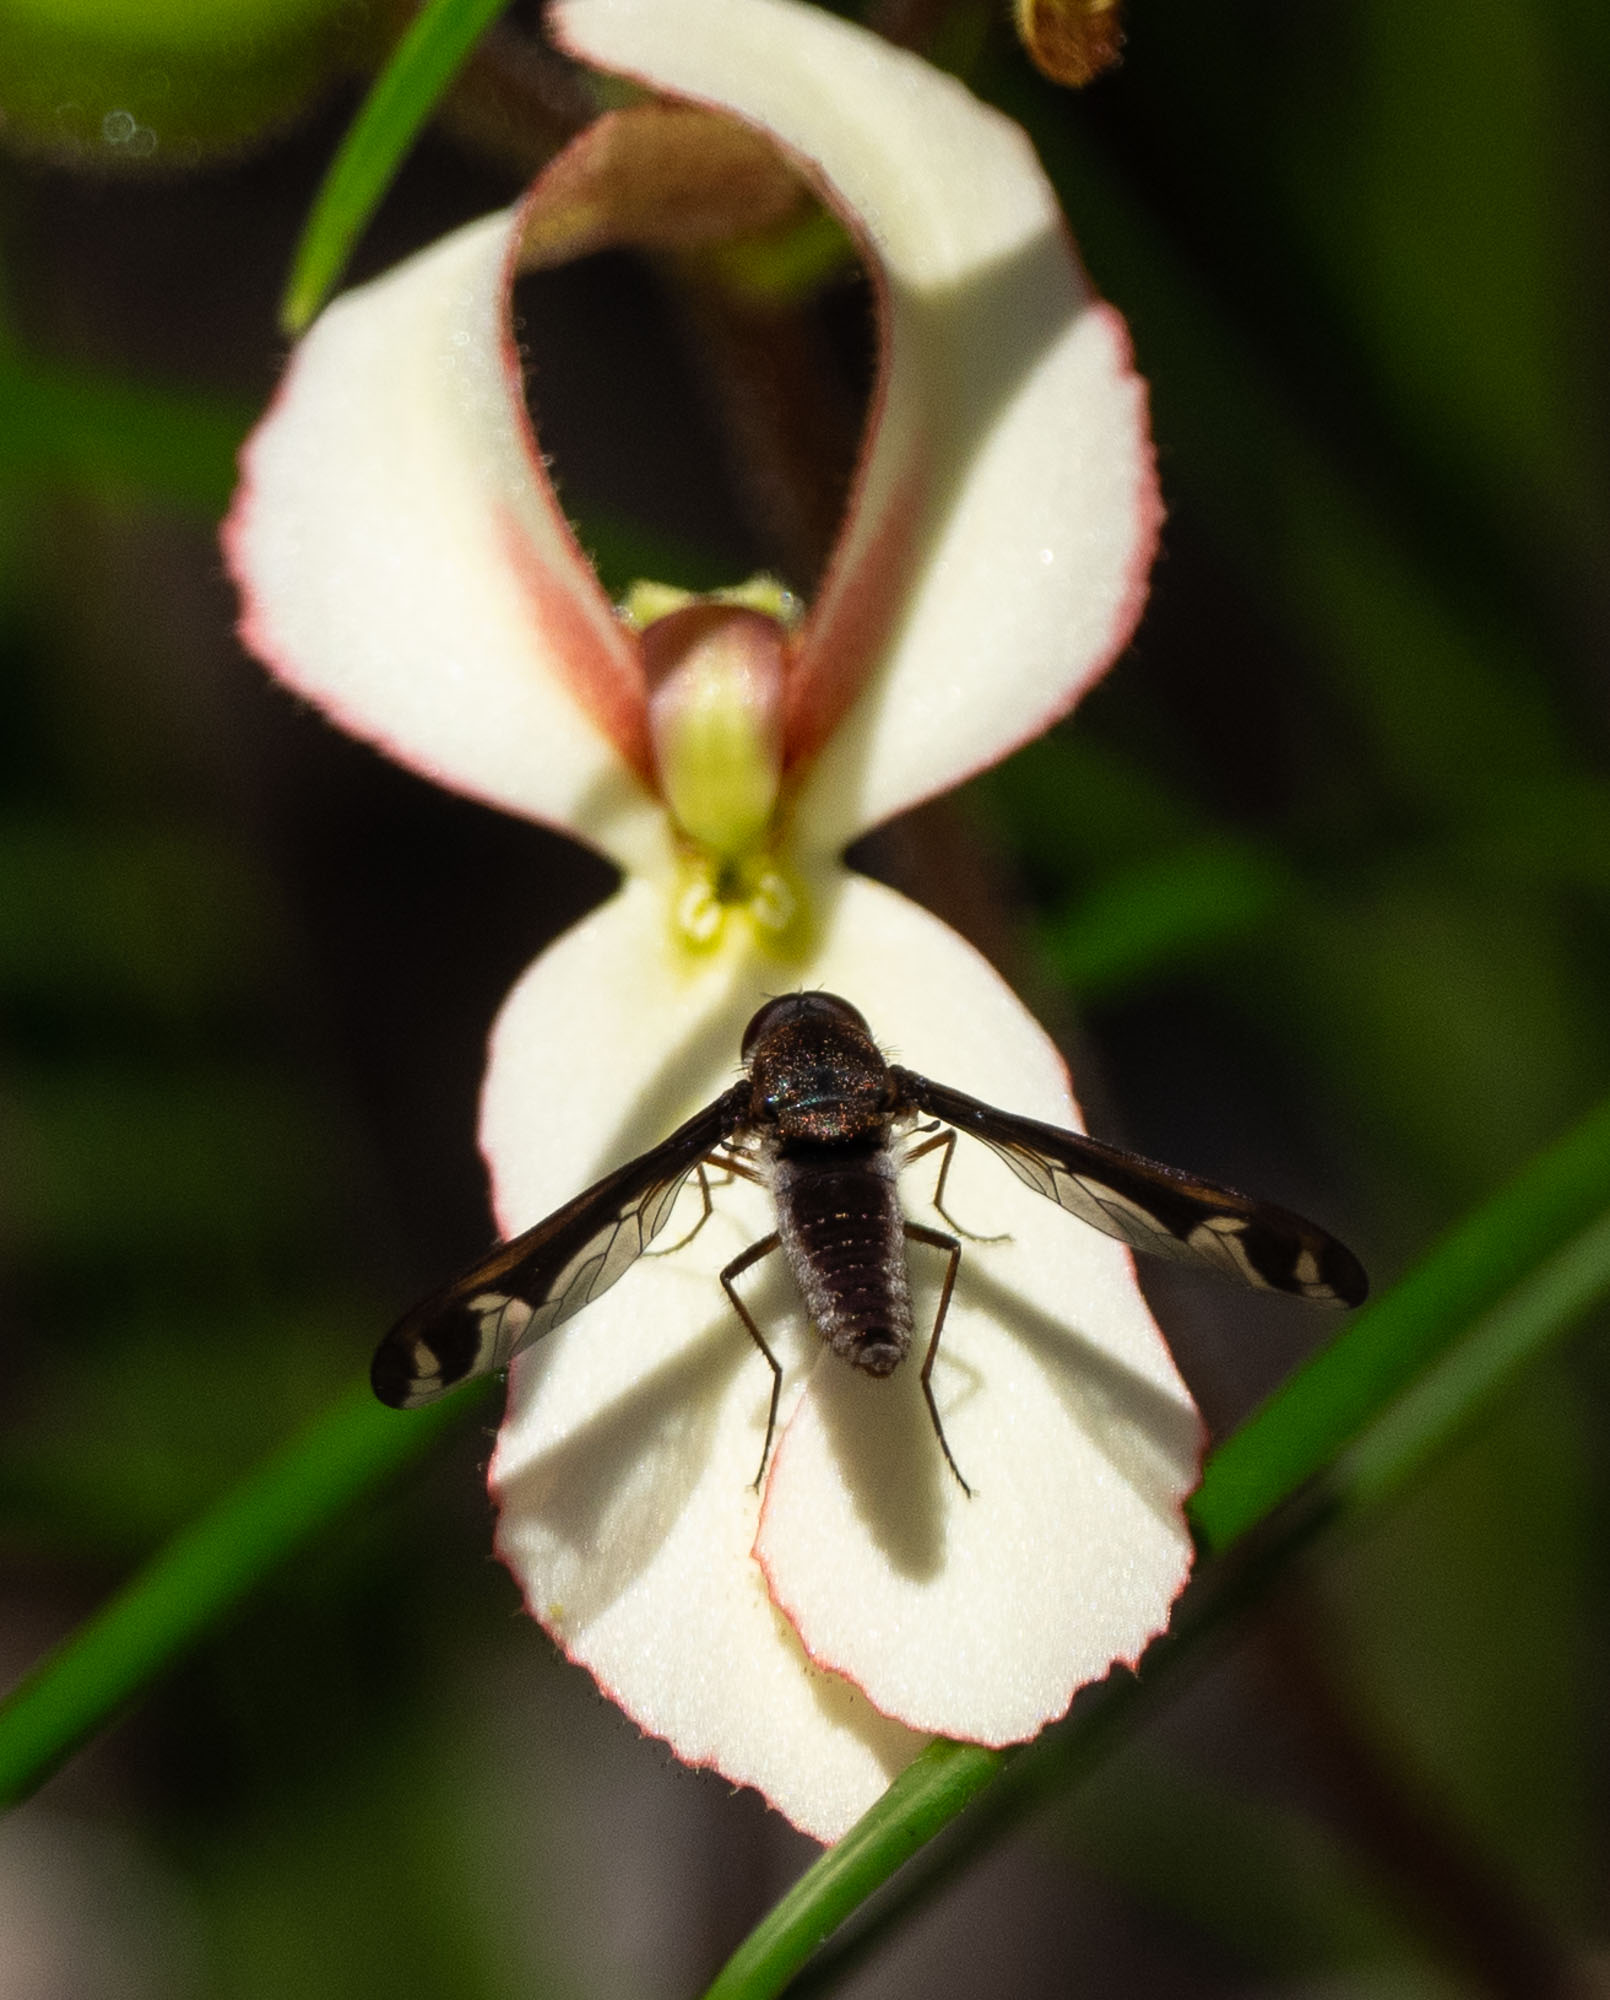 another bee fly, and this one likely to help pollinate the Stylidium (Trigger Plant)